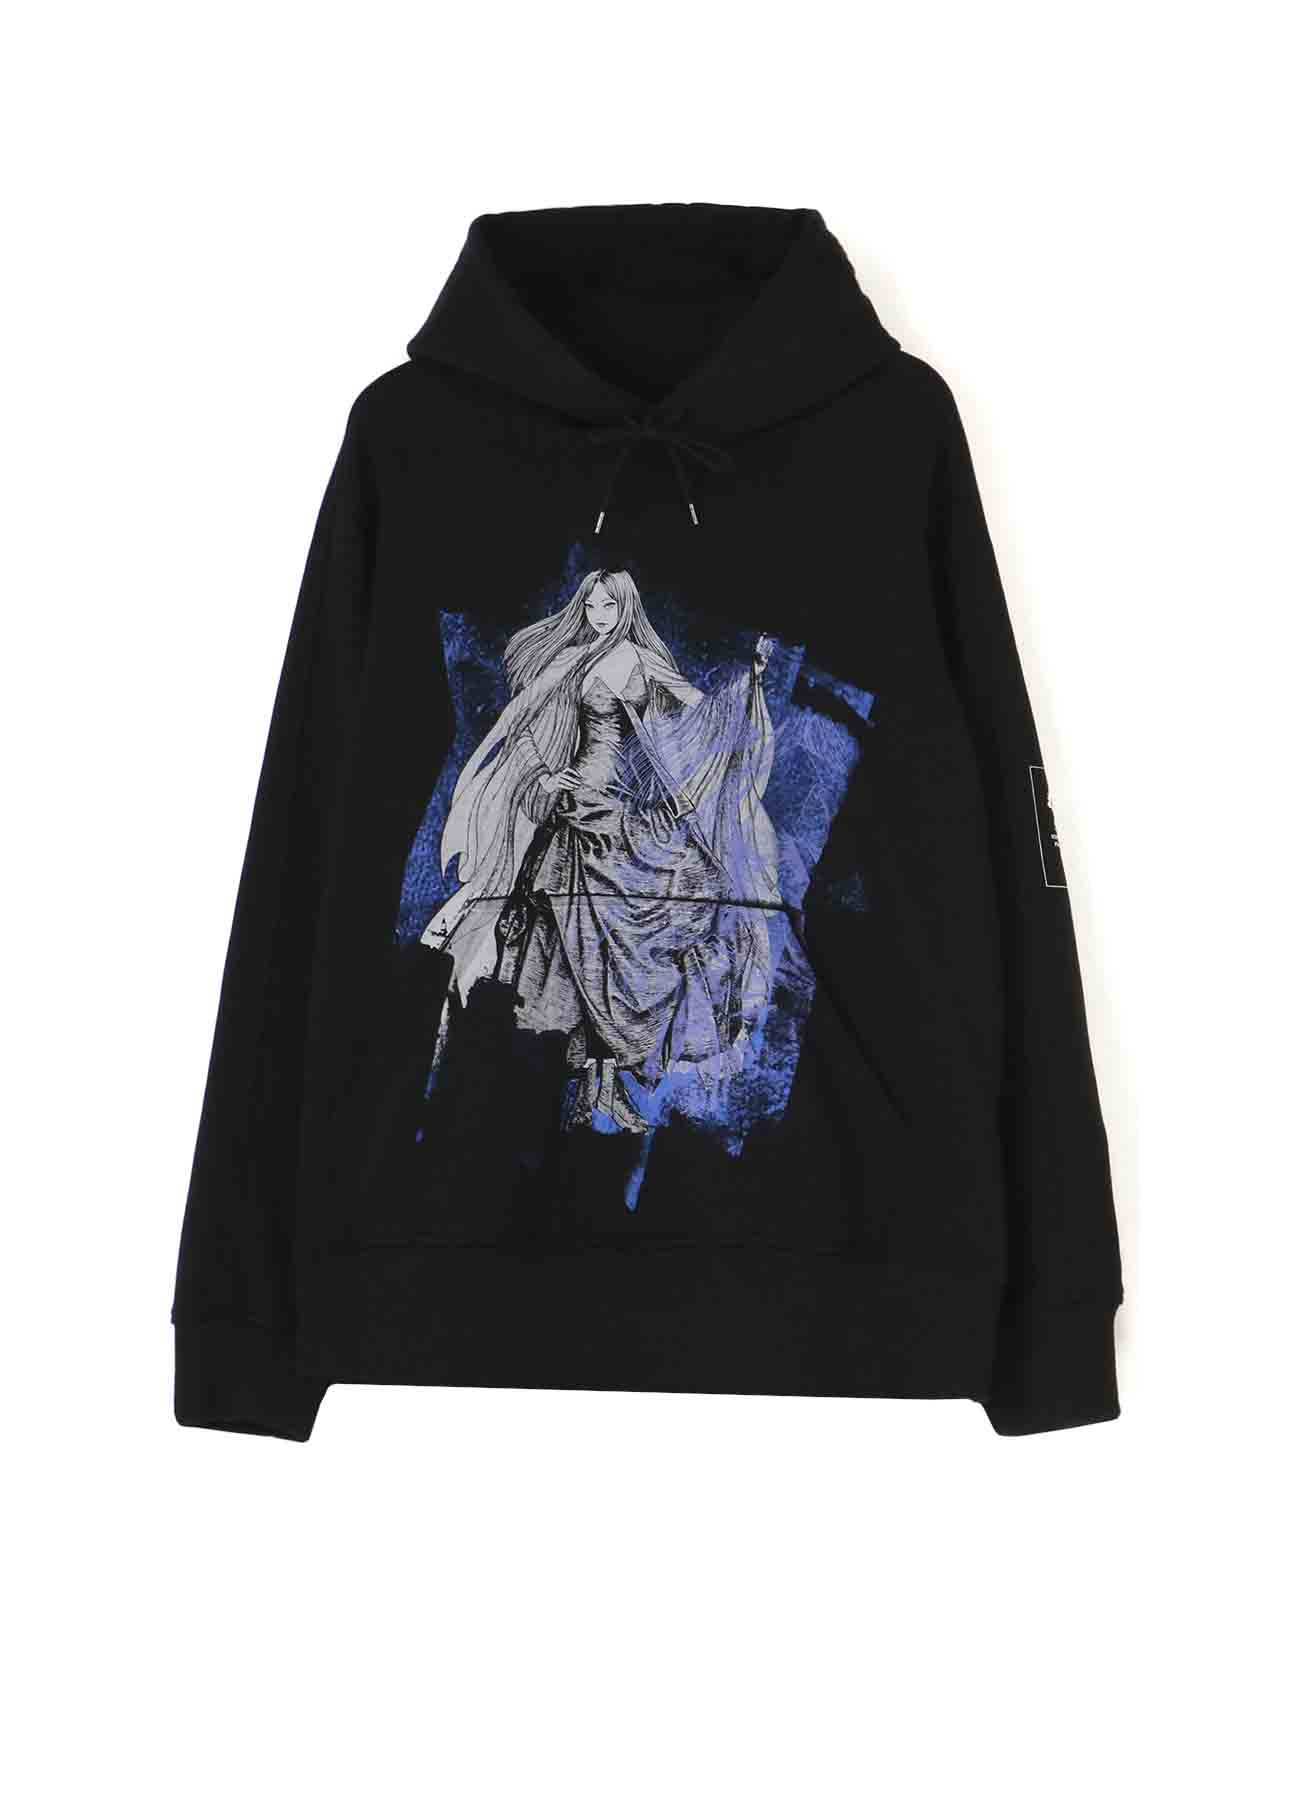 French Terry Stitch Work 「Tomie」Wearing Yohji Yamamoto Dress Tulle Hoodie